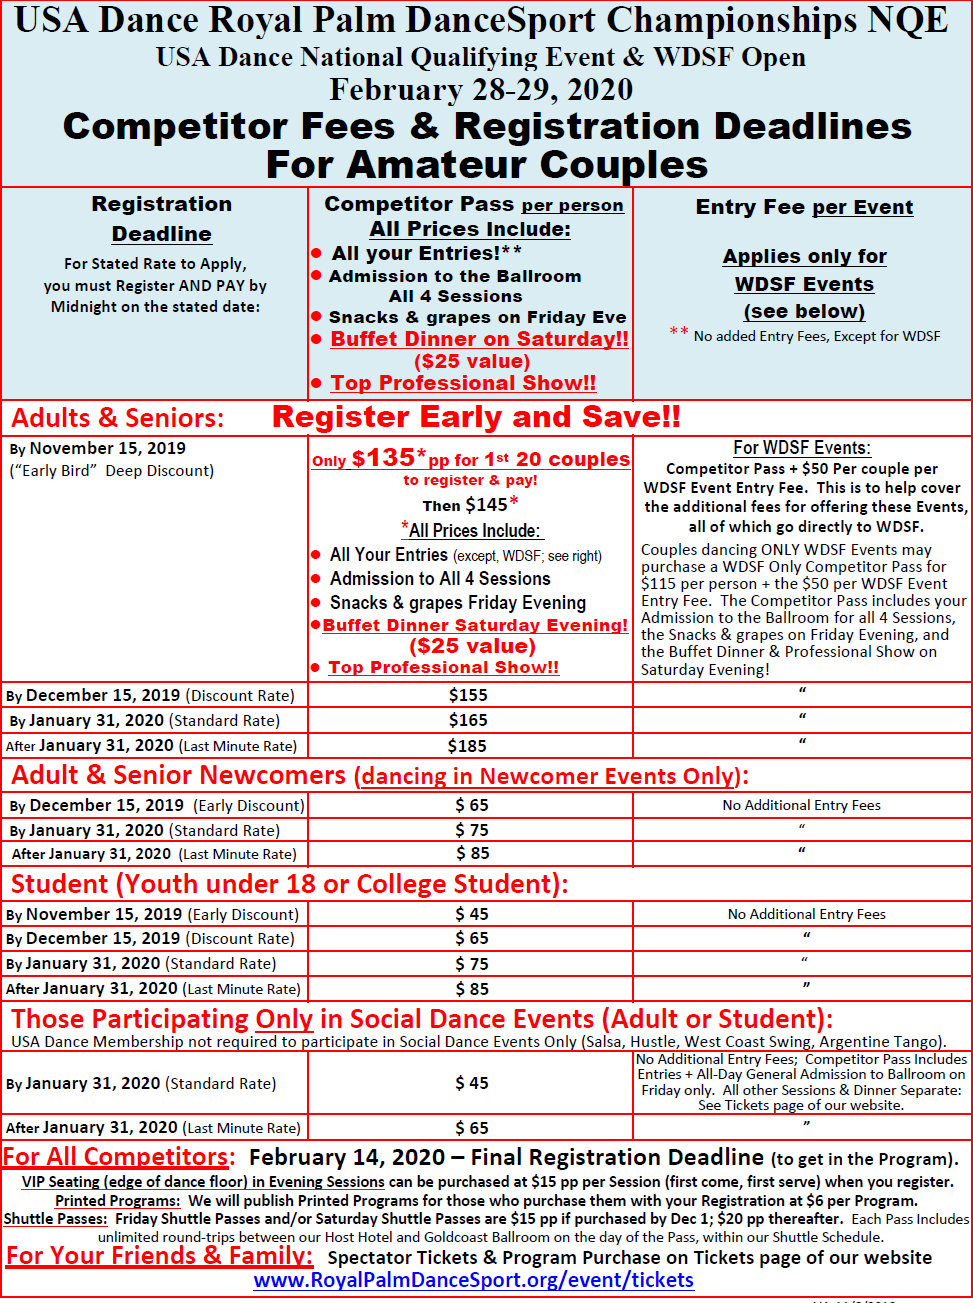 Amateur Fees & Deadlines - 2020 Royal Palm DanceSport Championships NQE & WDSF Open